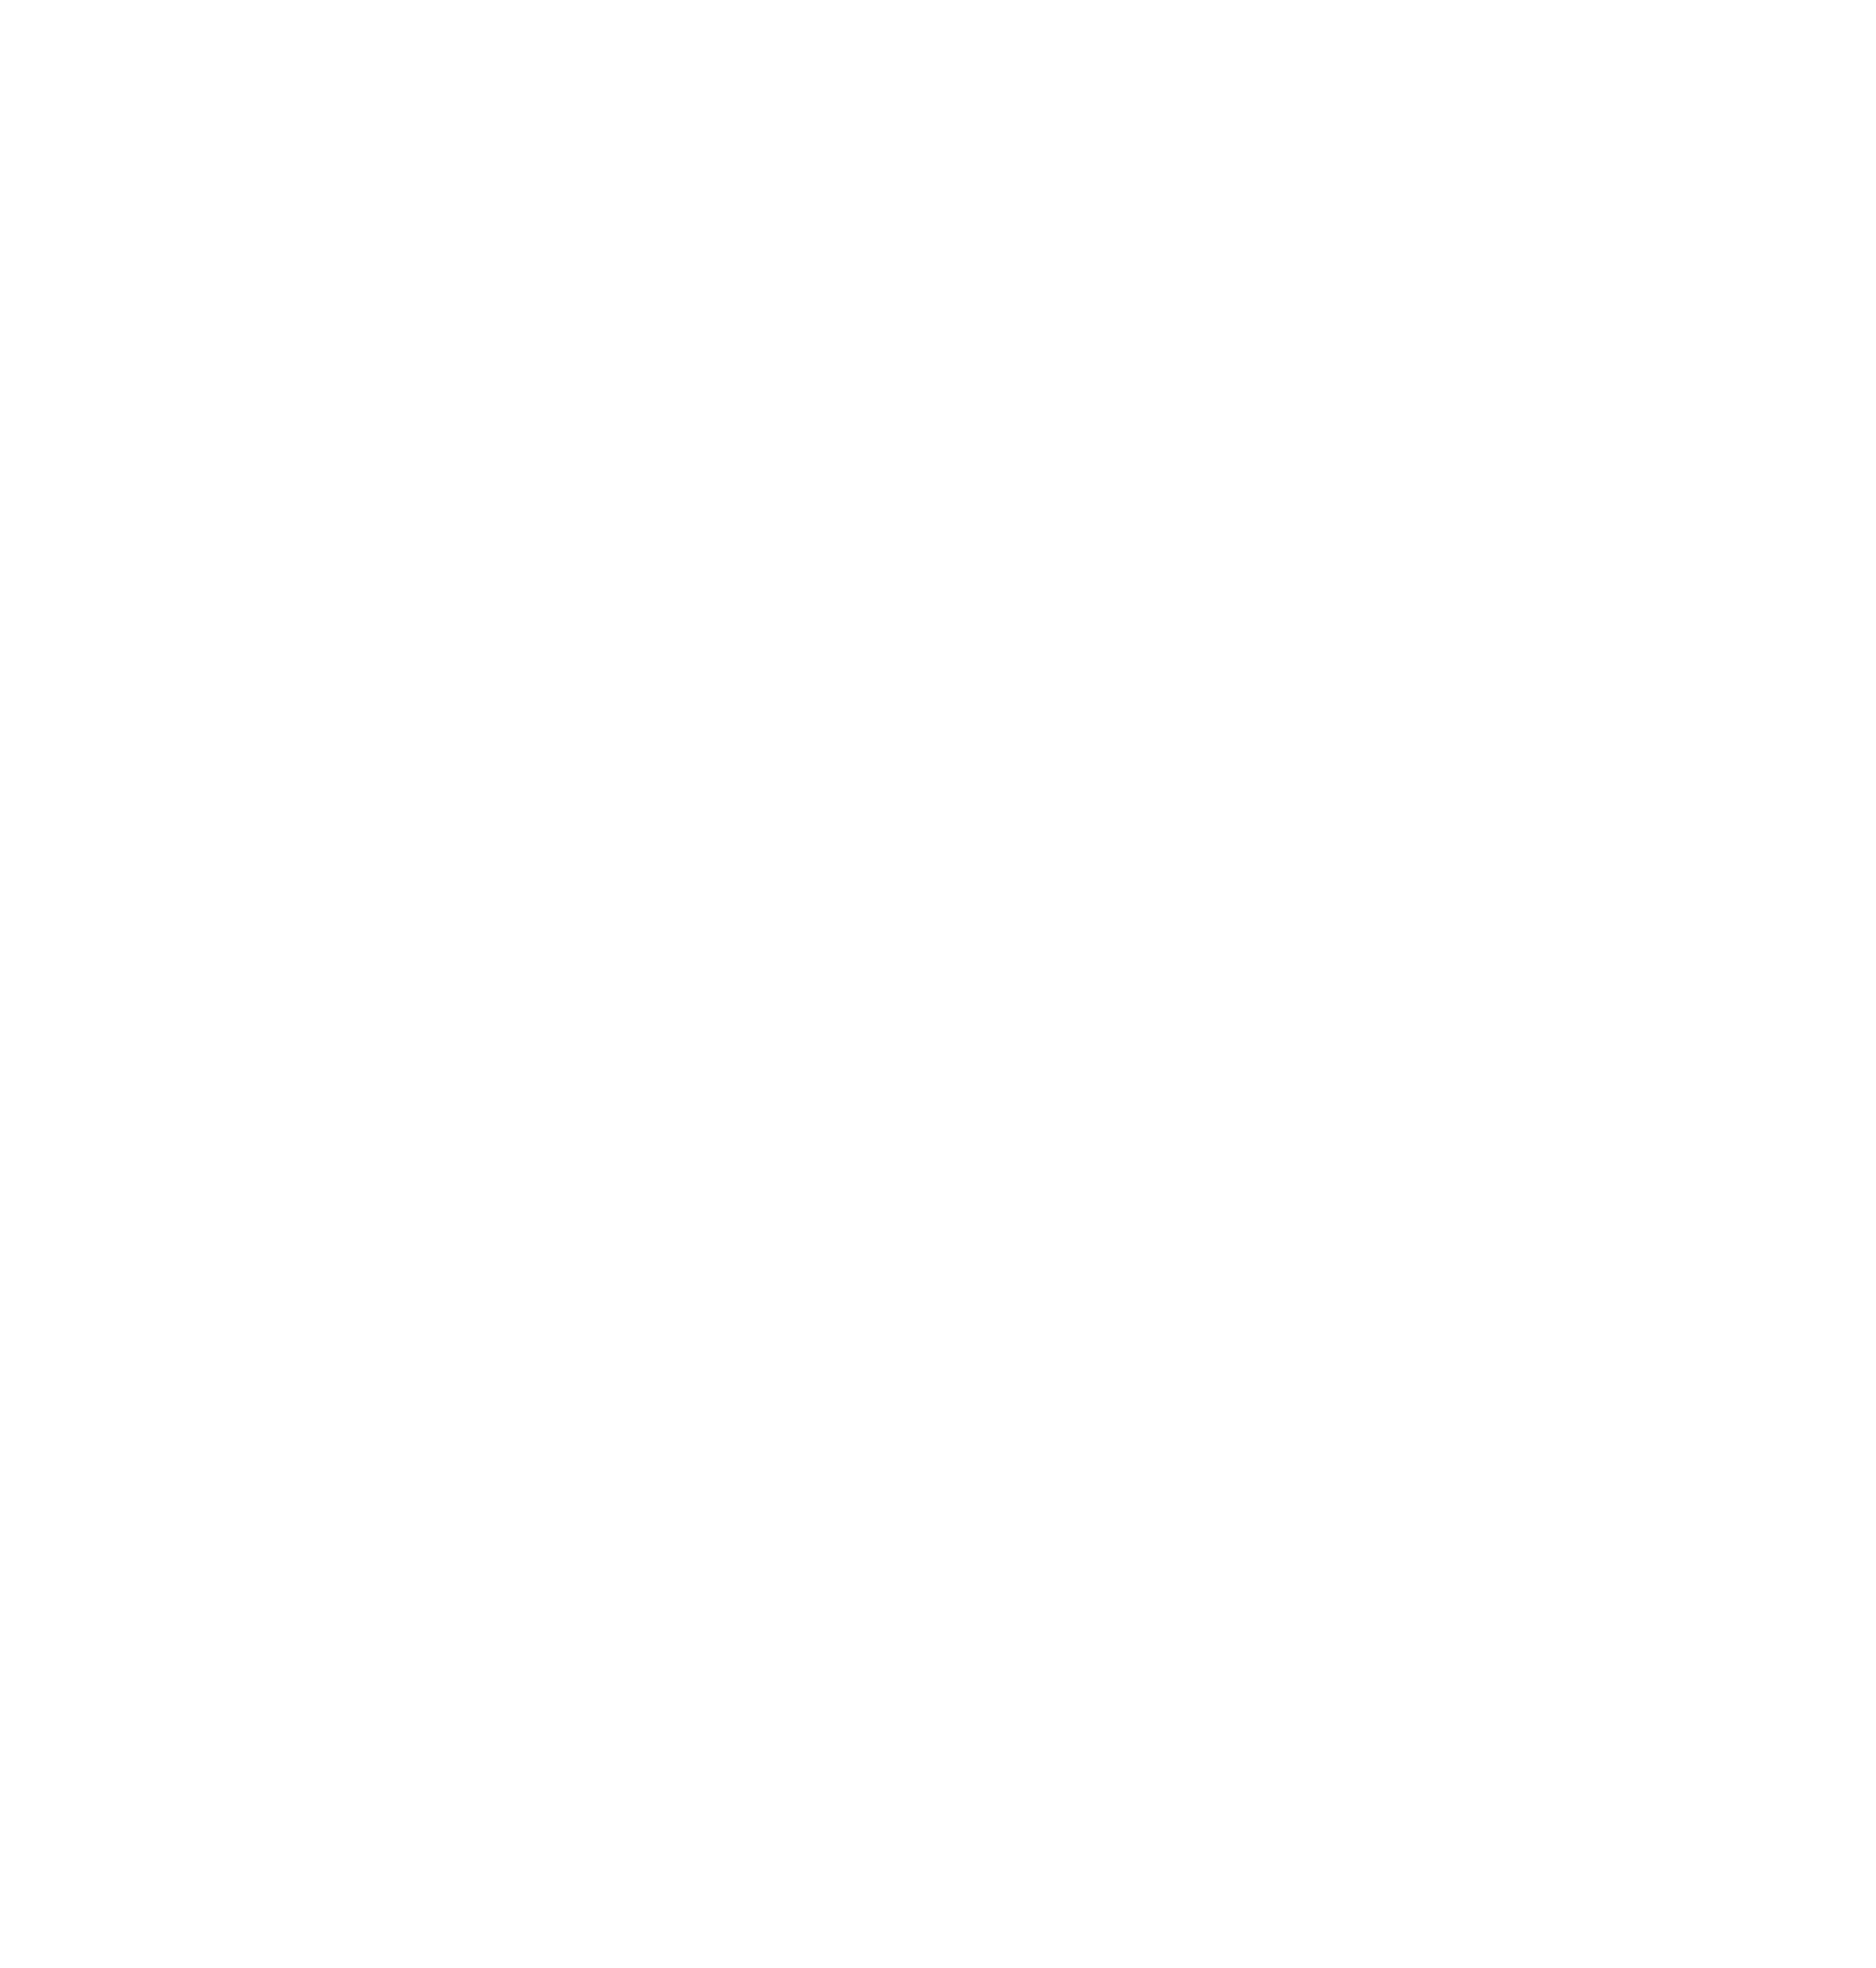 Osceola County School for the Arts / Homepage